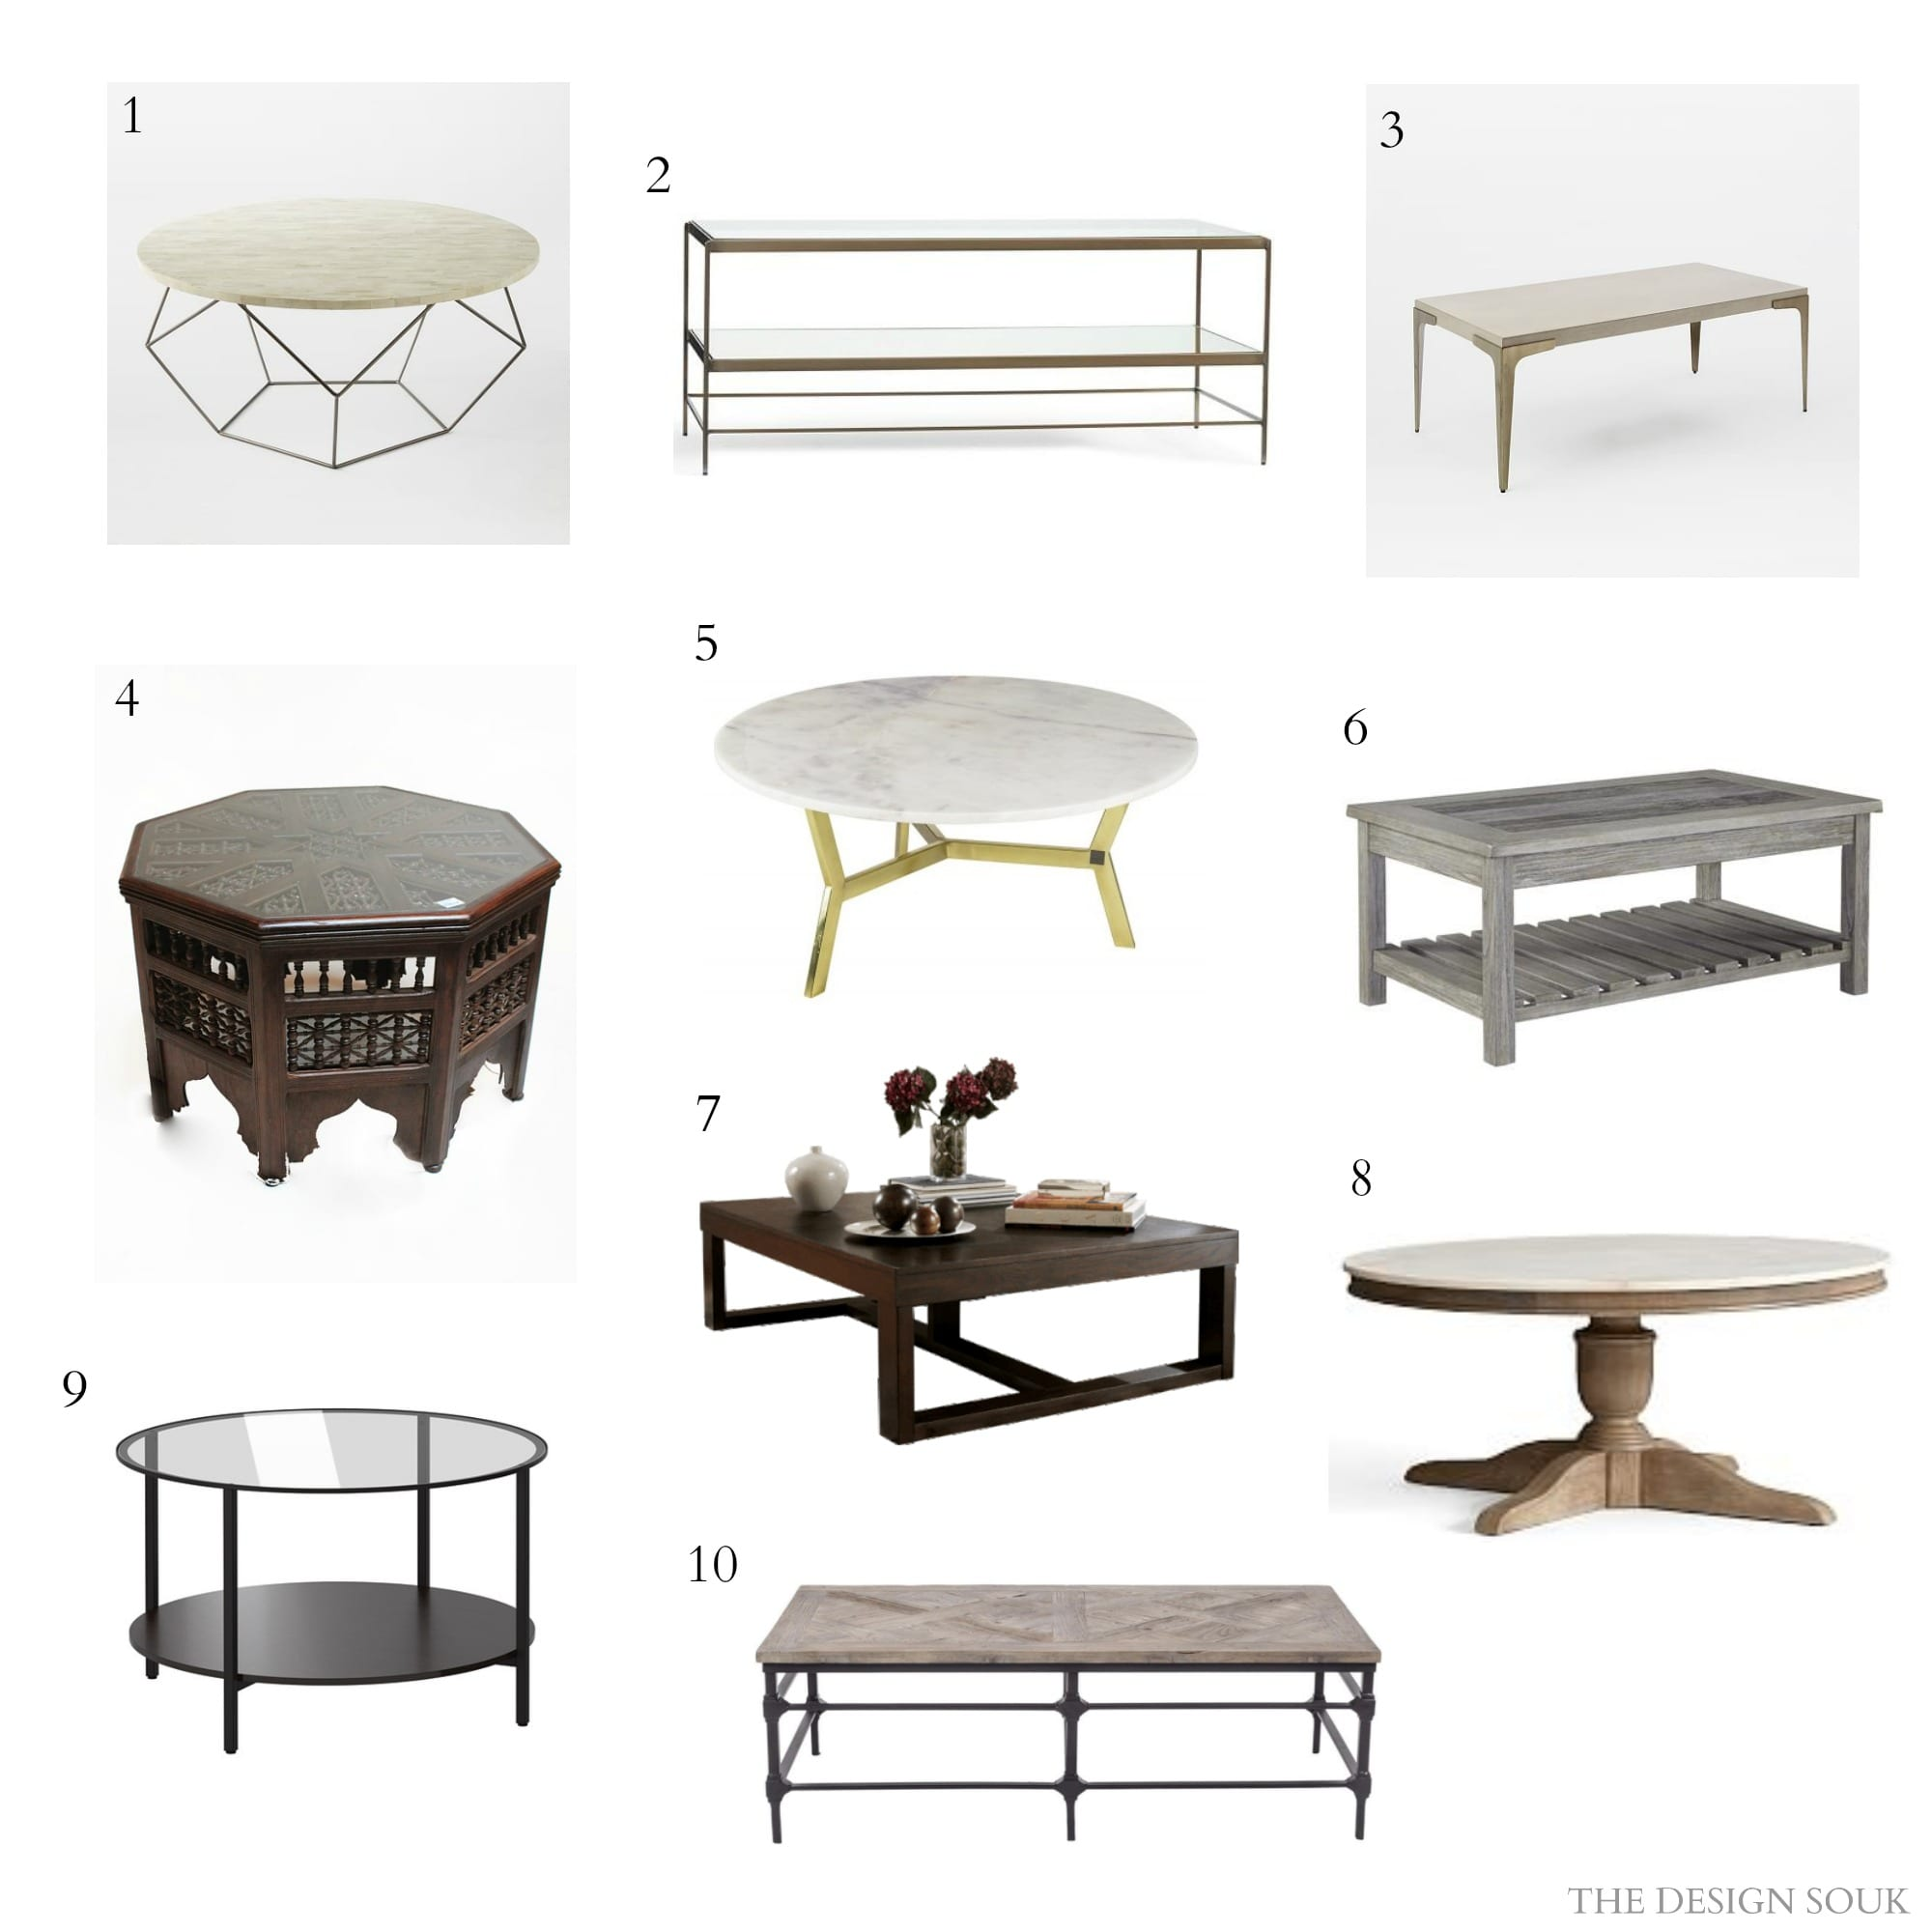 10 Fabulous Coffee Tables | THE DESIGN SOUK | Www.thedesignsouk.com | 1